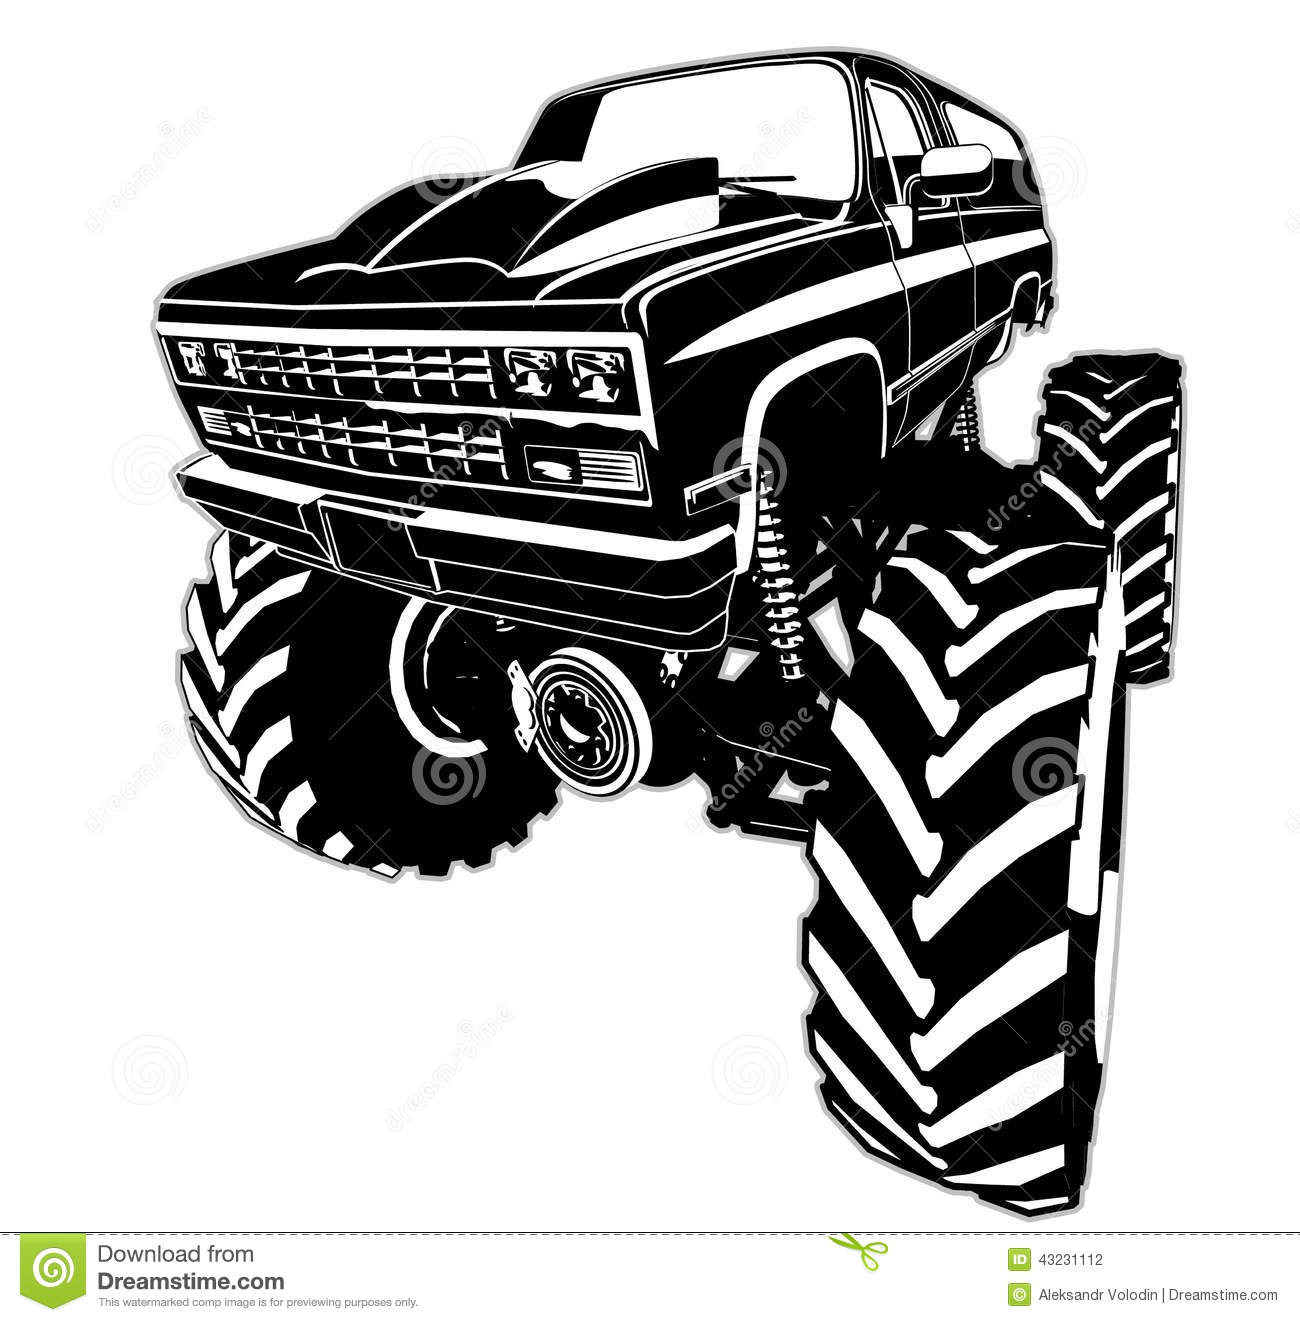 Cartoon Monster Truck Stock Vector Illustration Of Large 43231112